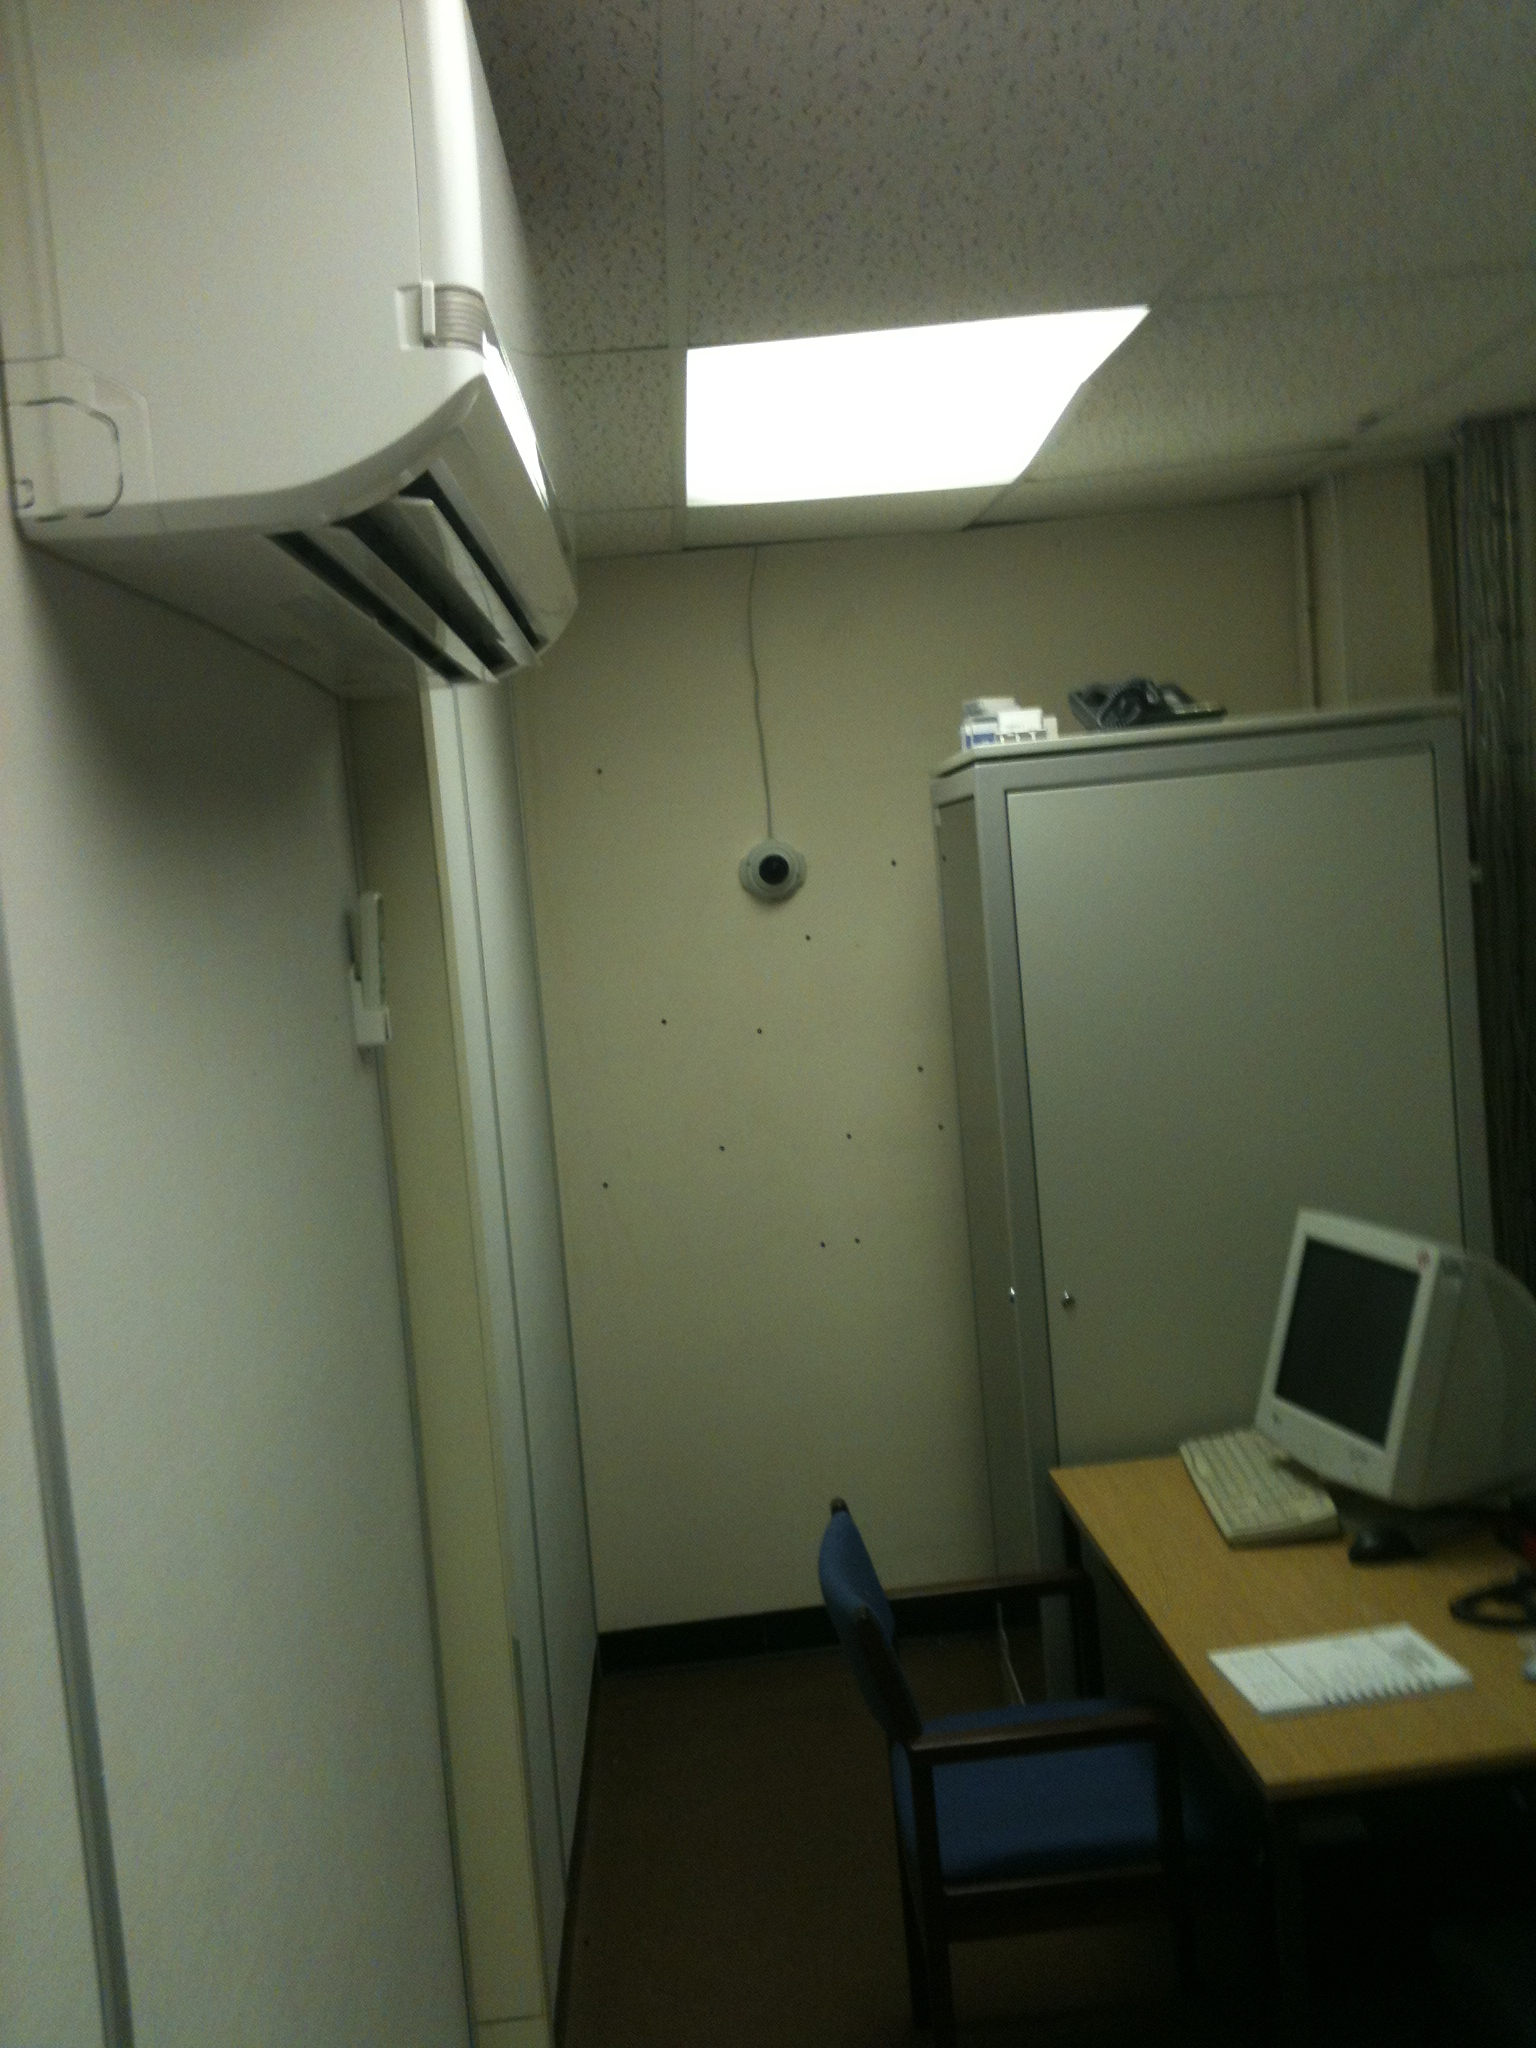 server room air conditioning unit in Fibrefab Haverhill with servers in the background